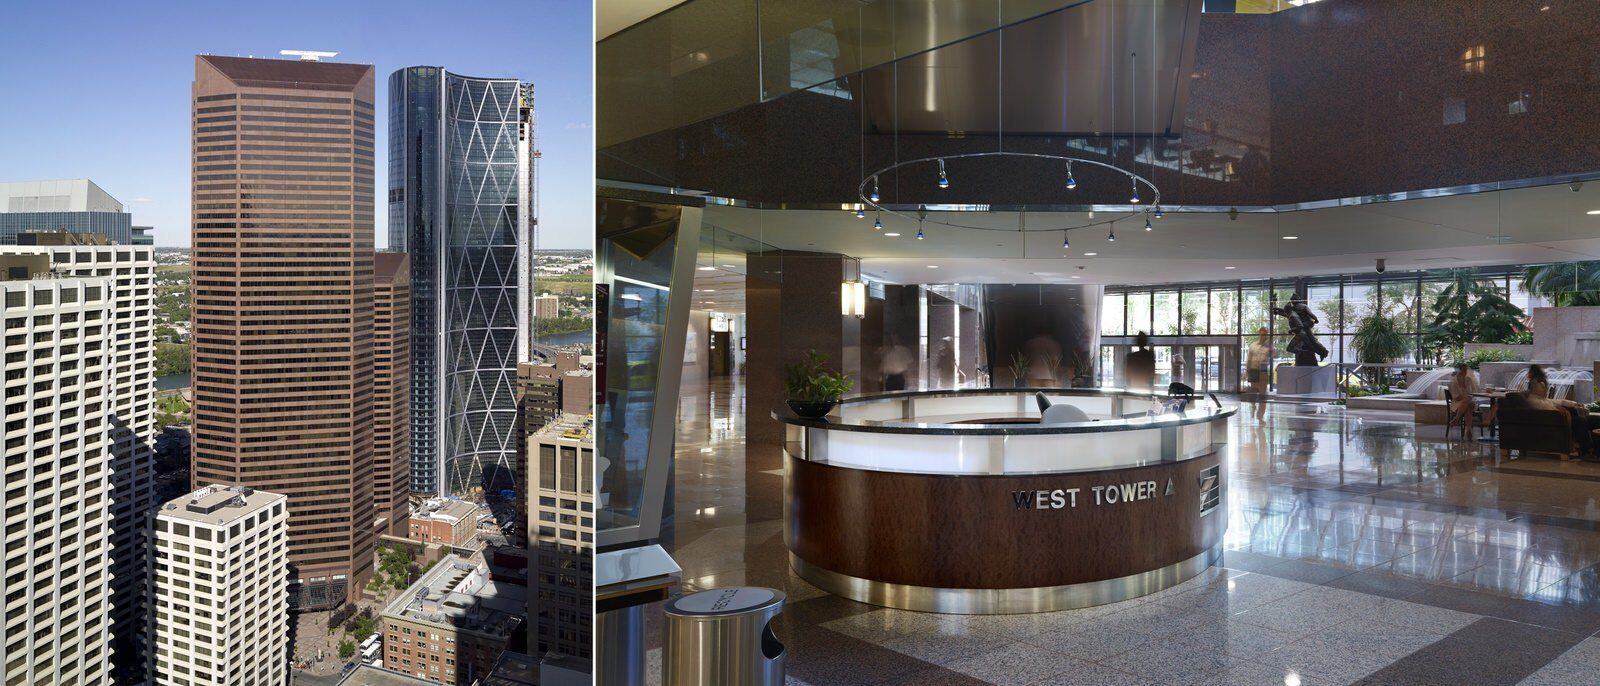 The lobby of the west tower building that is next to other skyscrapers in the middle of the city.